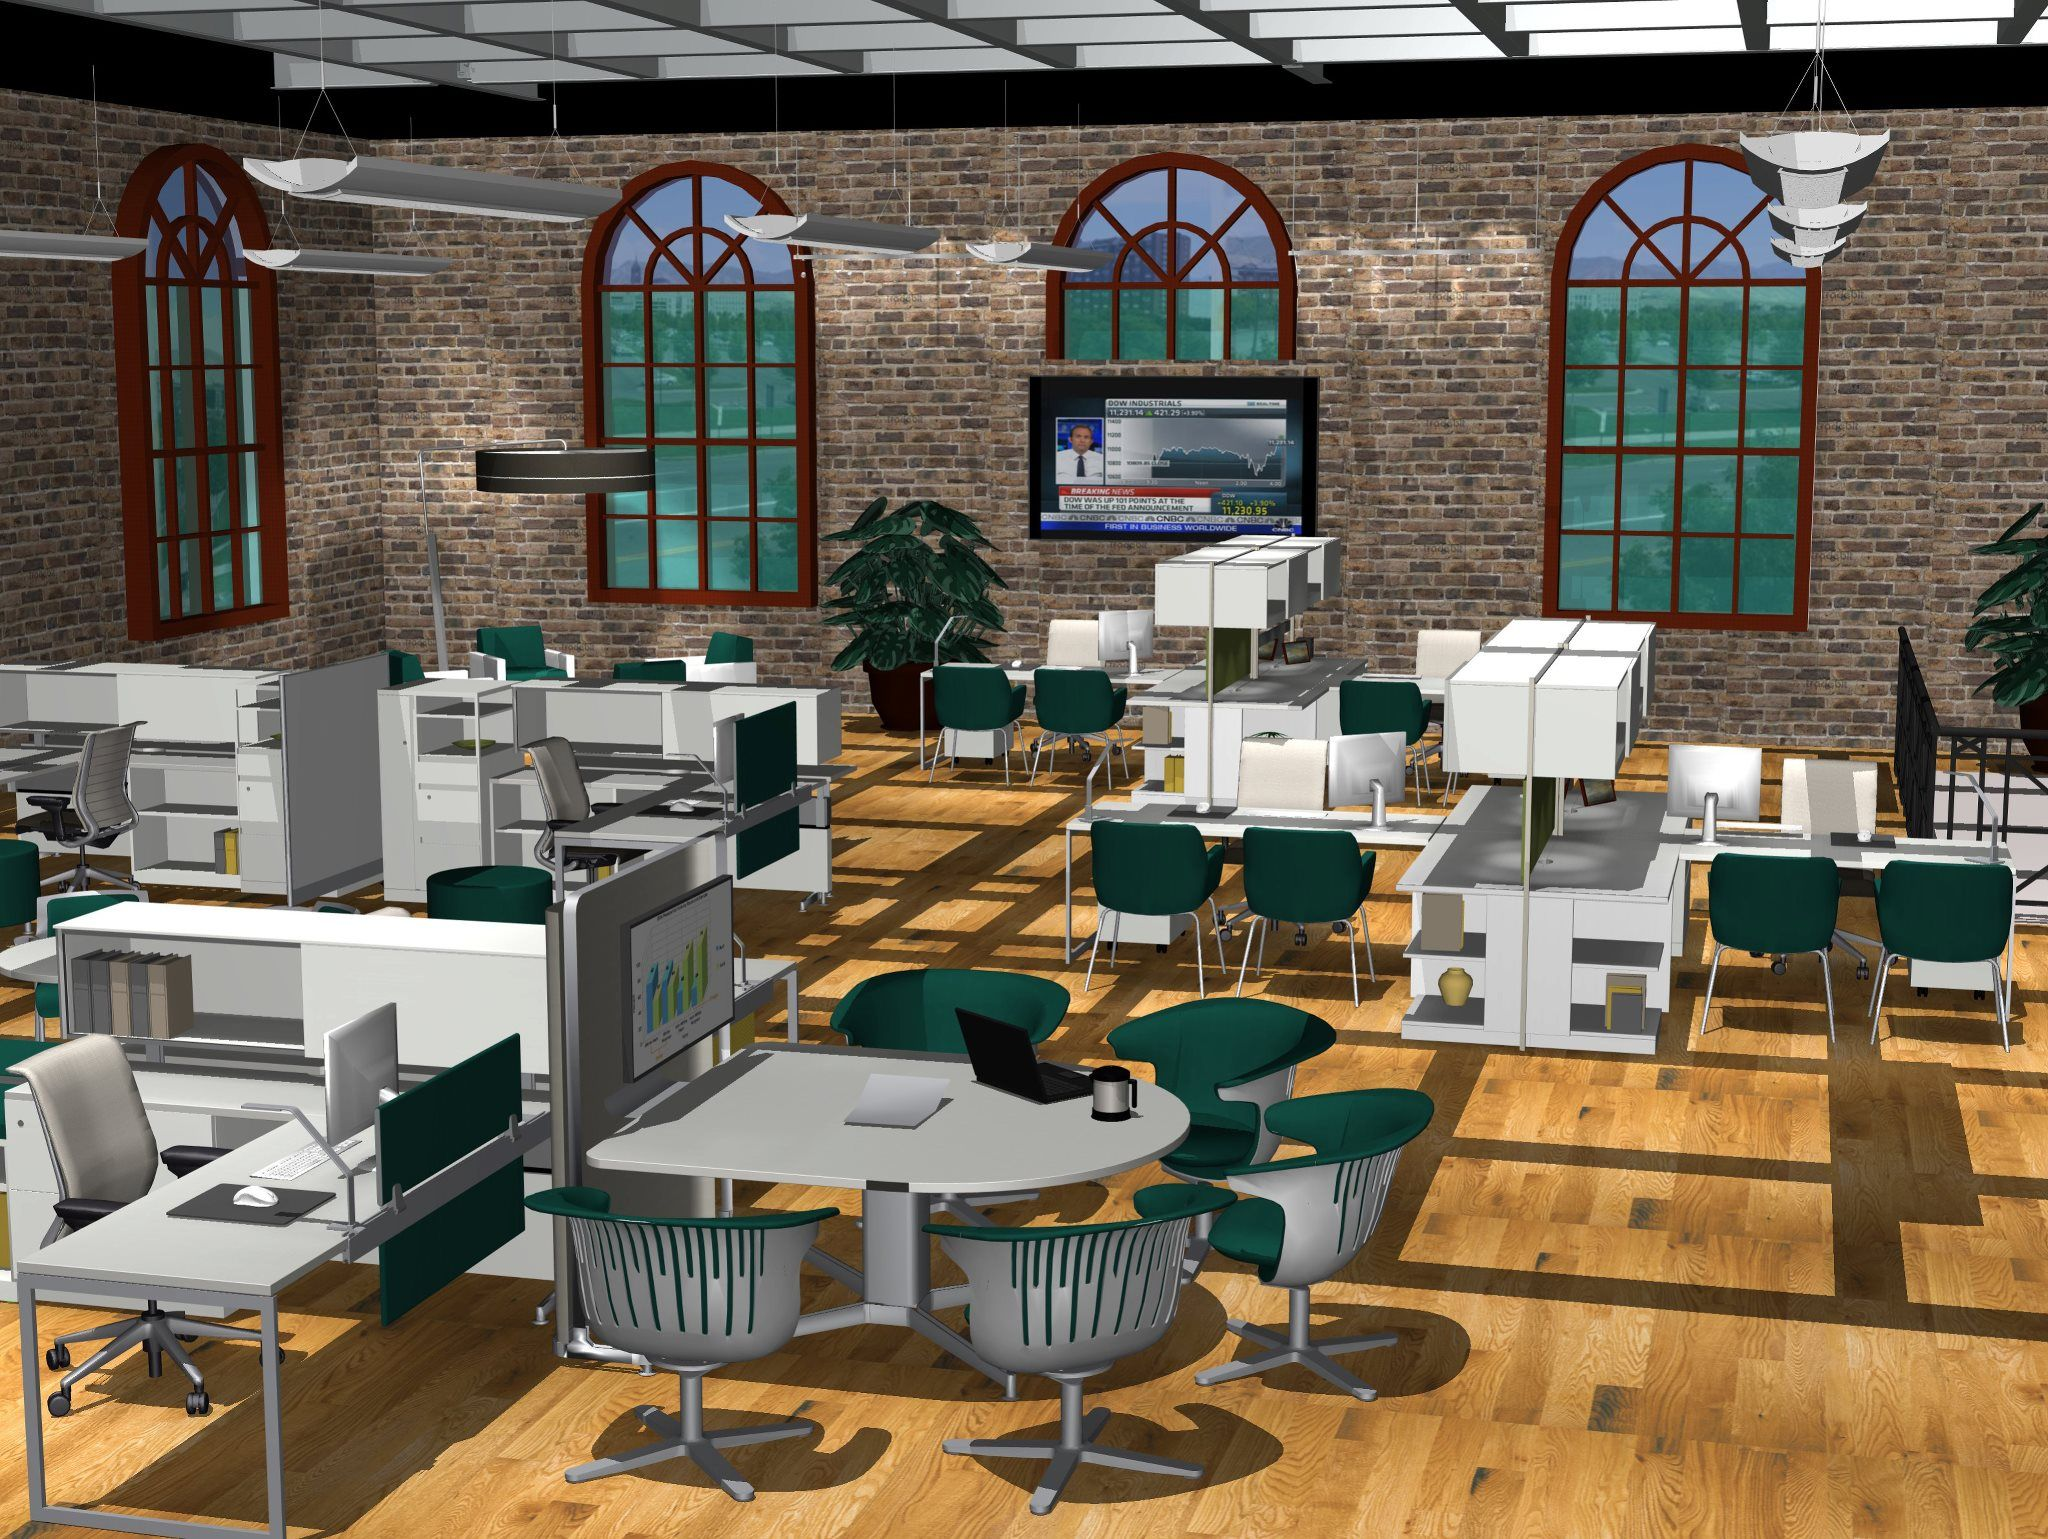 Captivating Second Place   Steelcase Midwest Commercial Interiorsu0027 Rendering Entry   By  Tami Shulson.